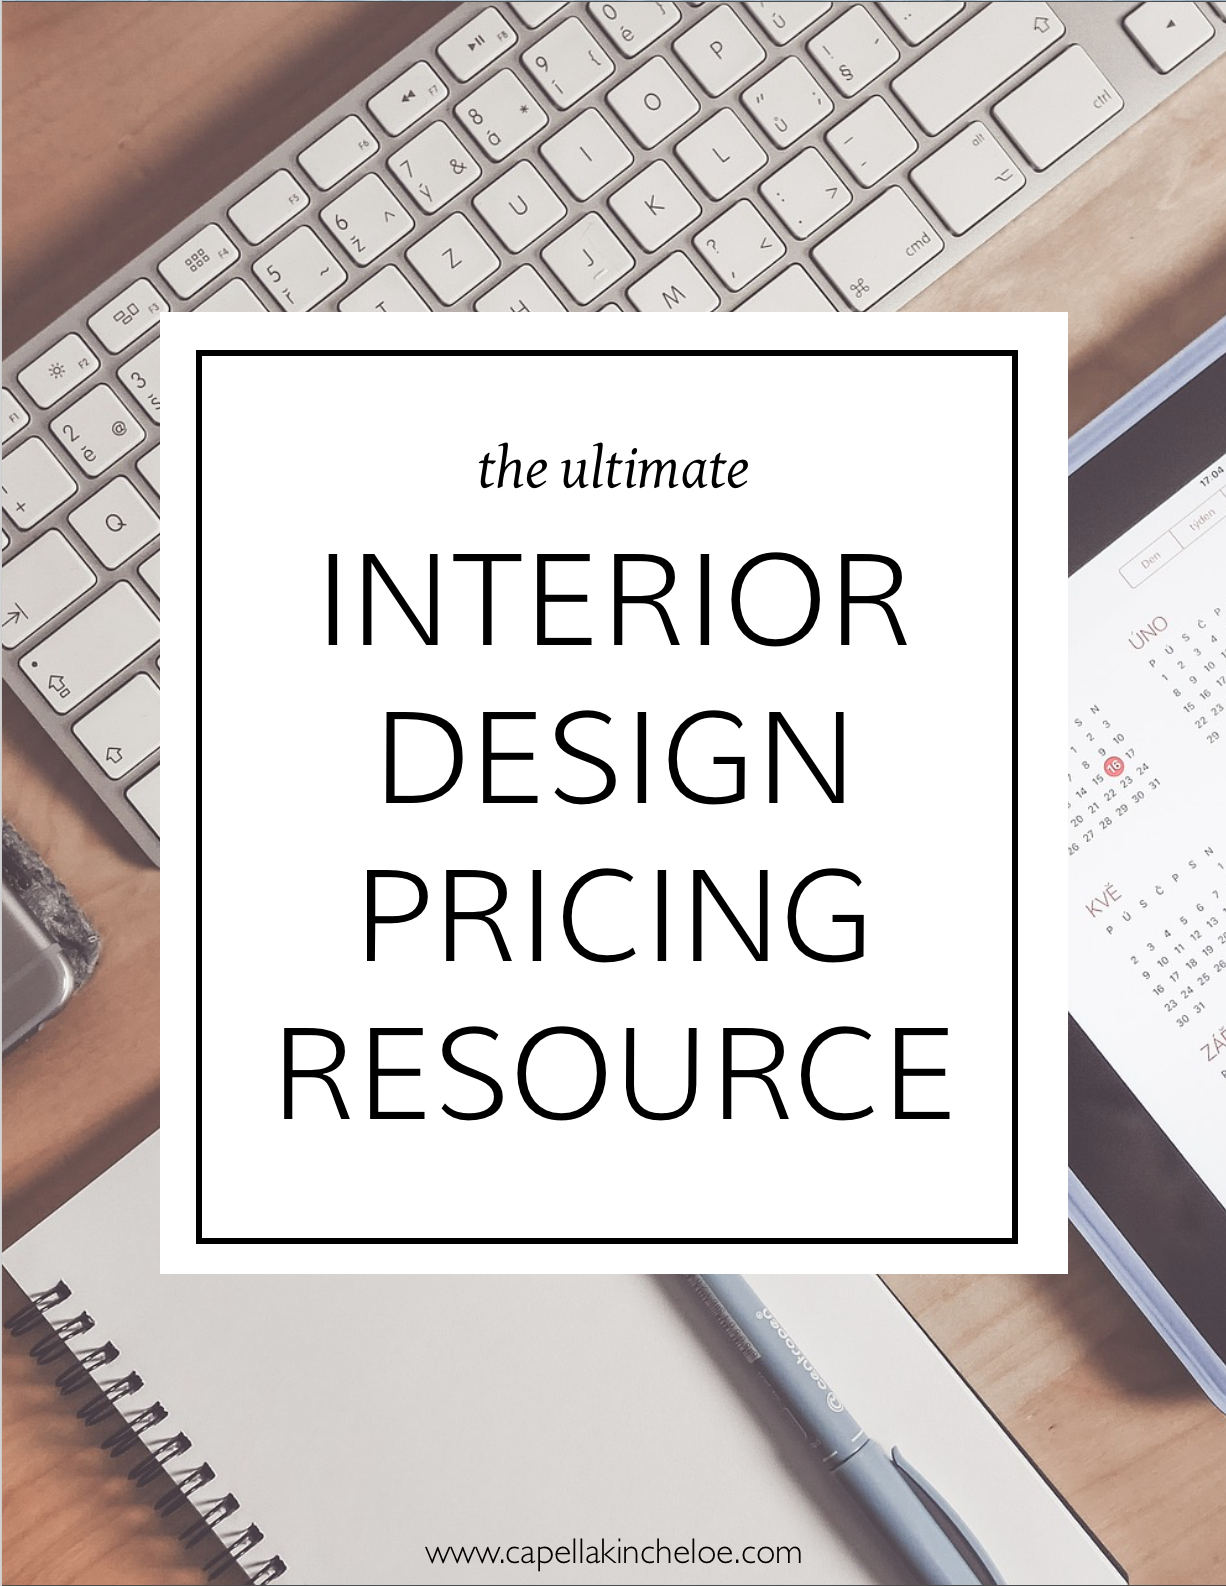 All the articles you ever need to price interior design services. A huge list!